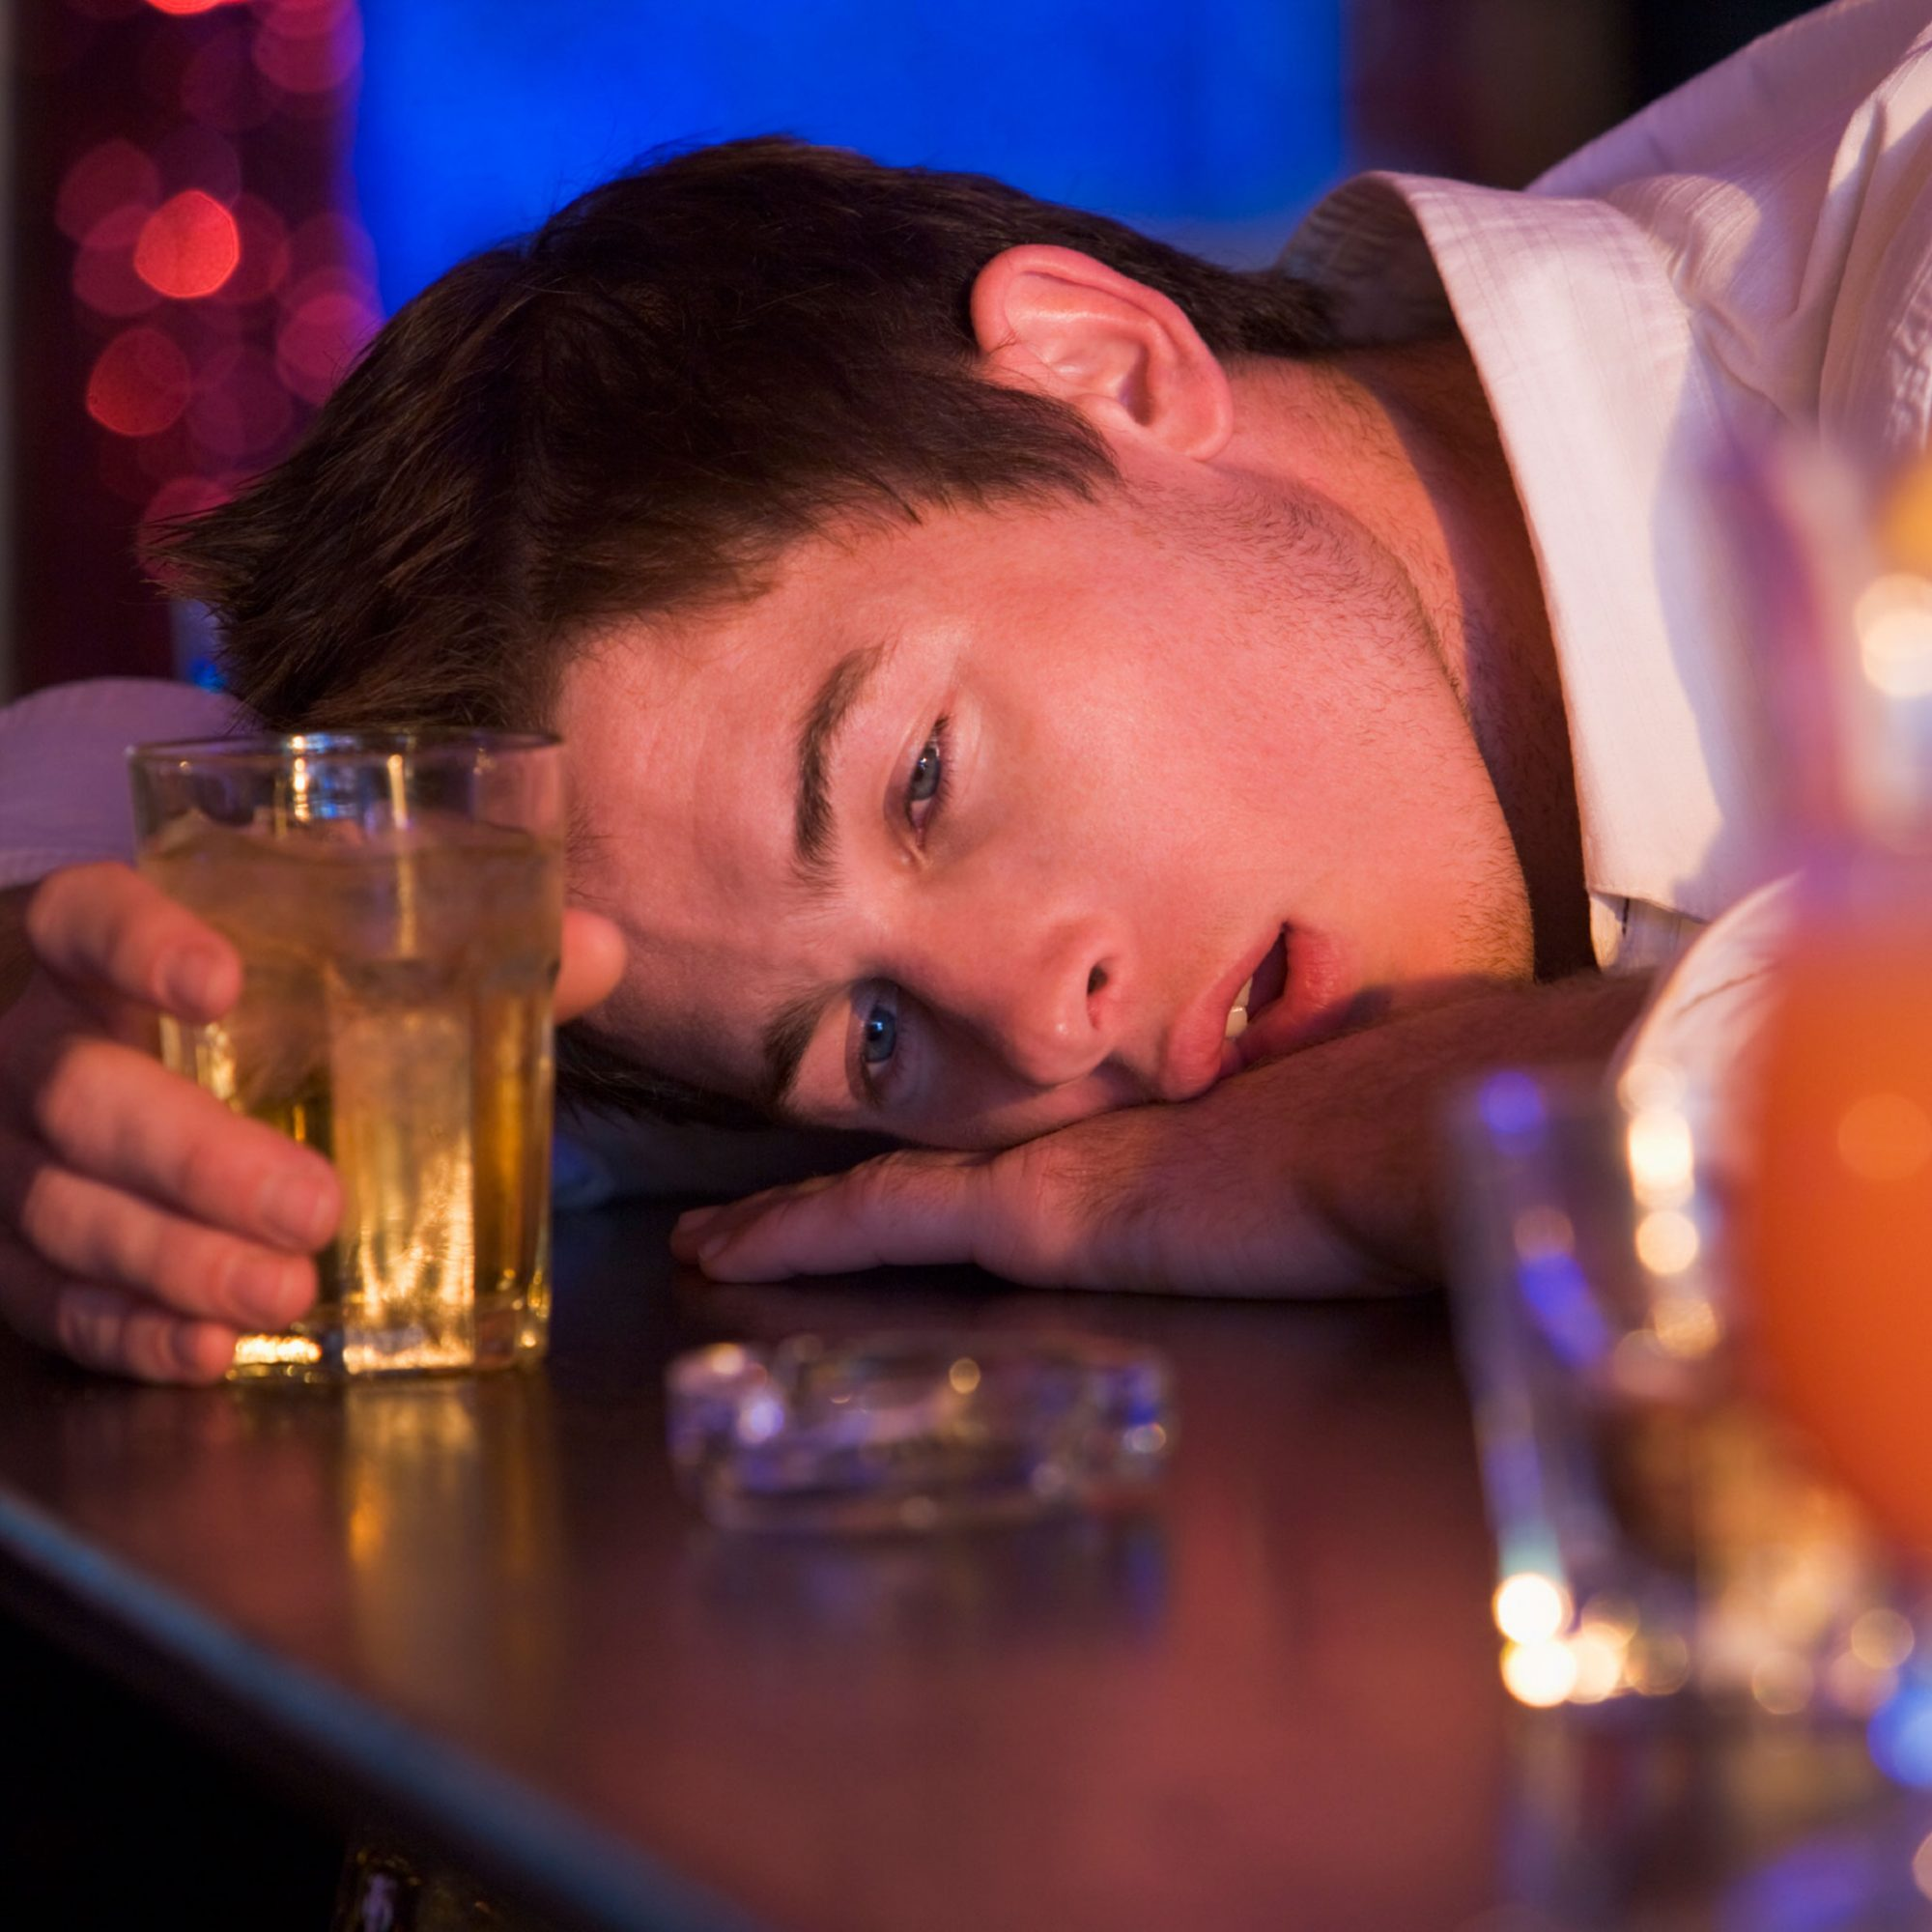 SECRET TO DRINKING WITHOUT GETTING DRUNK_1_1